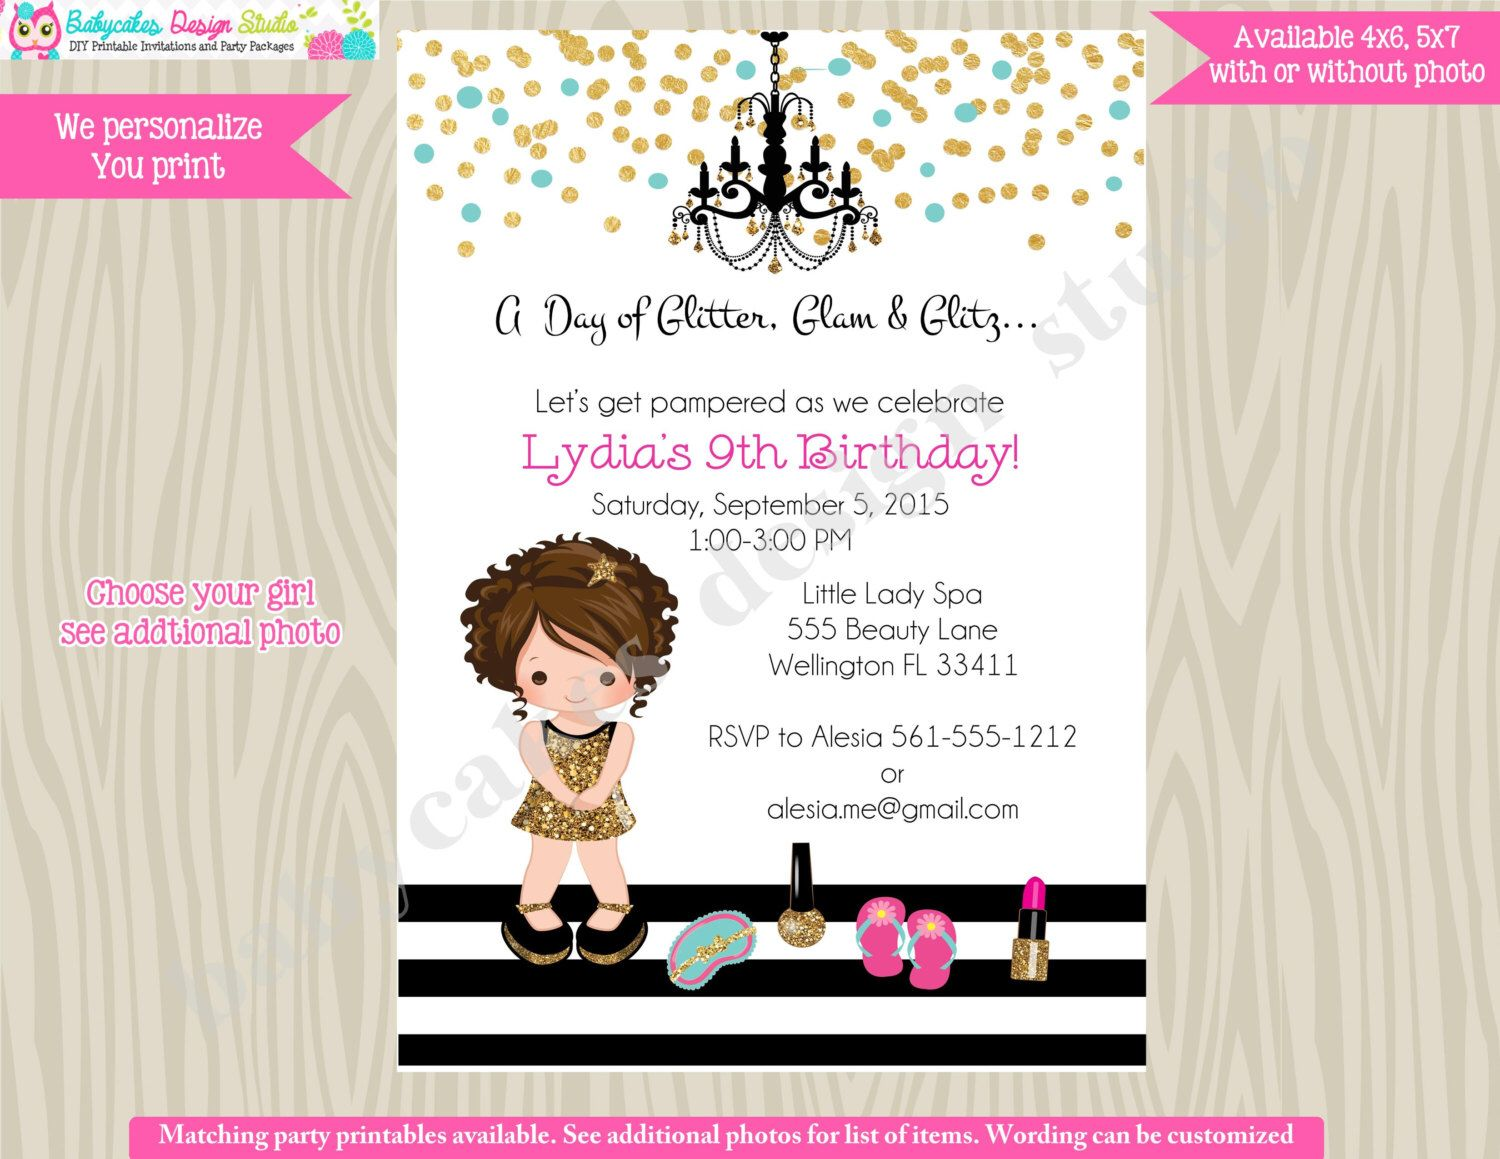 Glamour Spa Party Invitation invite Dress Up Pamper Spa Day Glam ...